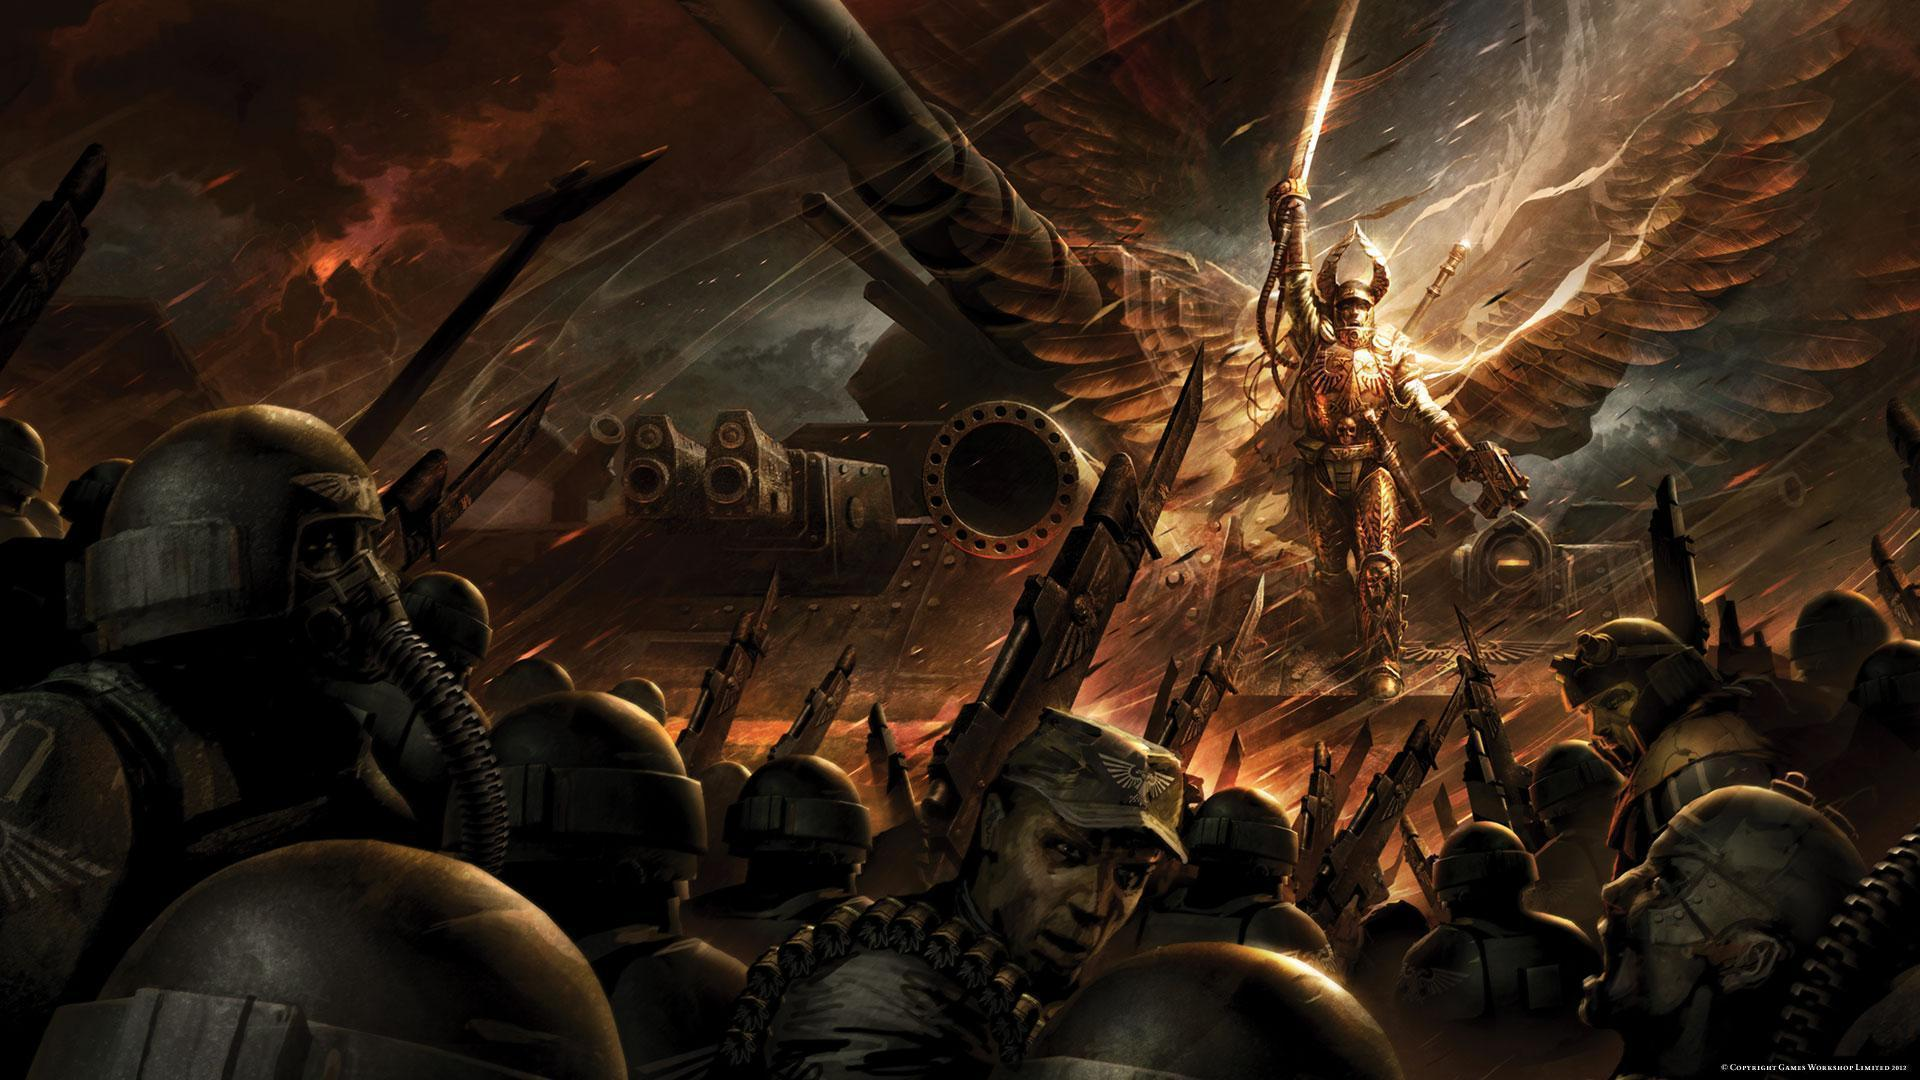 warhammer 40k wallpaper 1680x1050 - photo #2